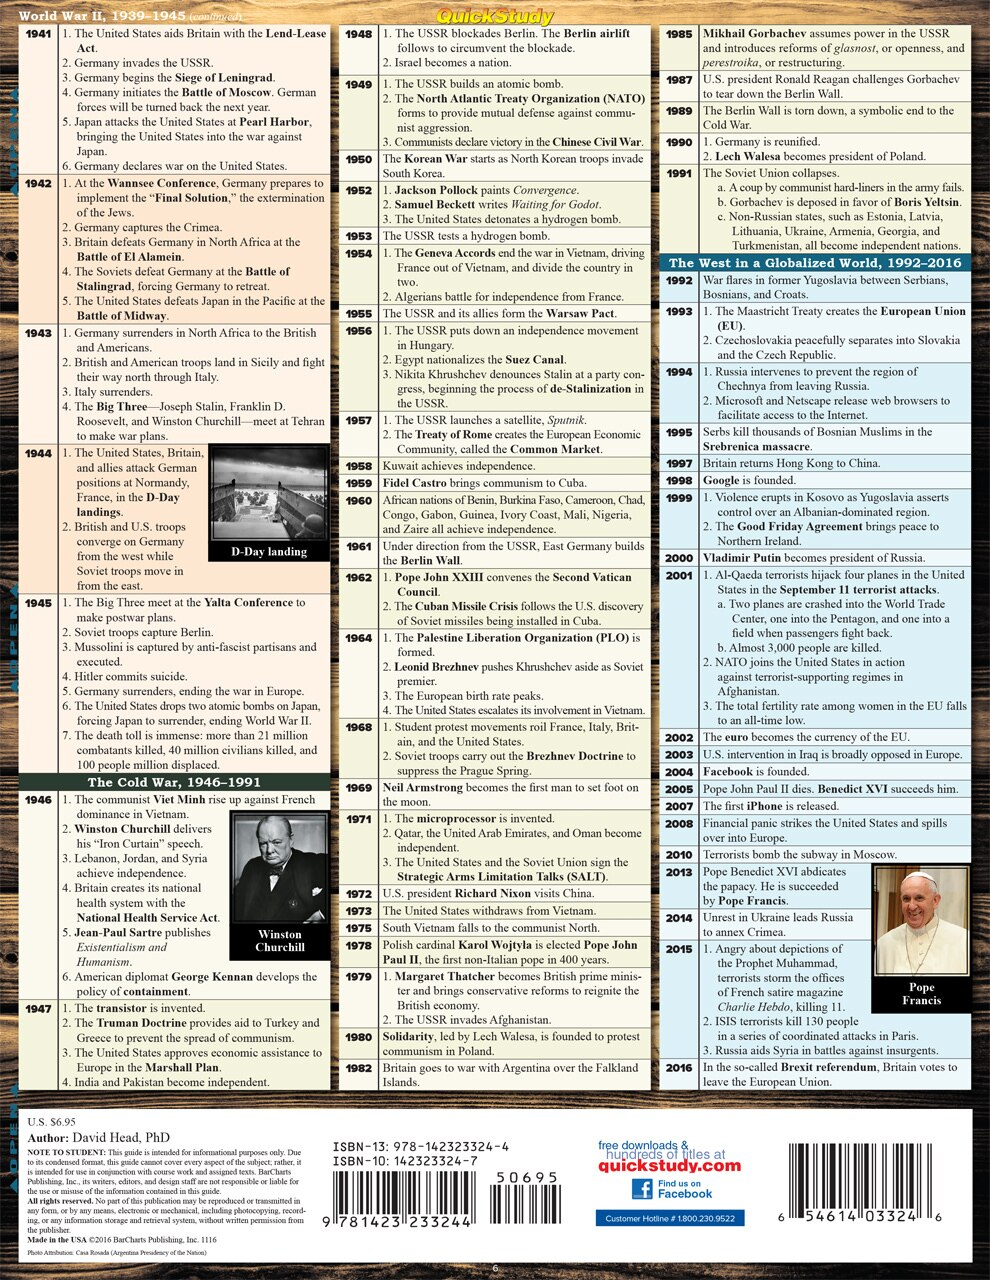 Quick Study QuickStudy Western Civilization 2 Laminated Study Guide BarCharts Publishing Inc Guide Back Image